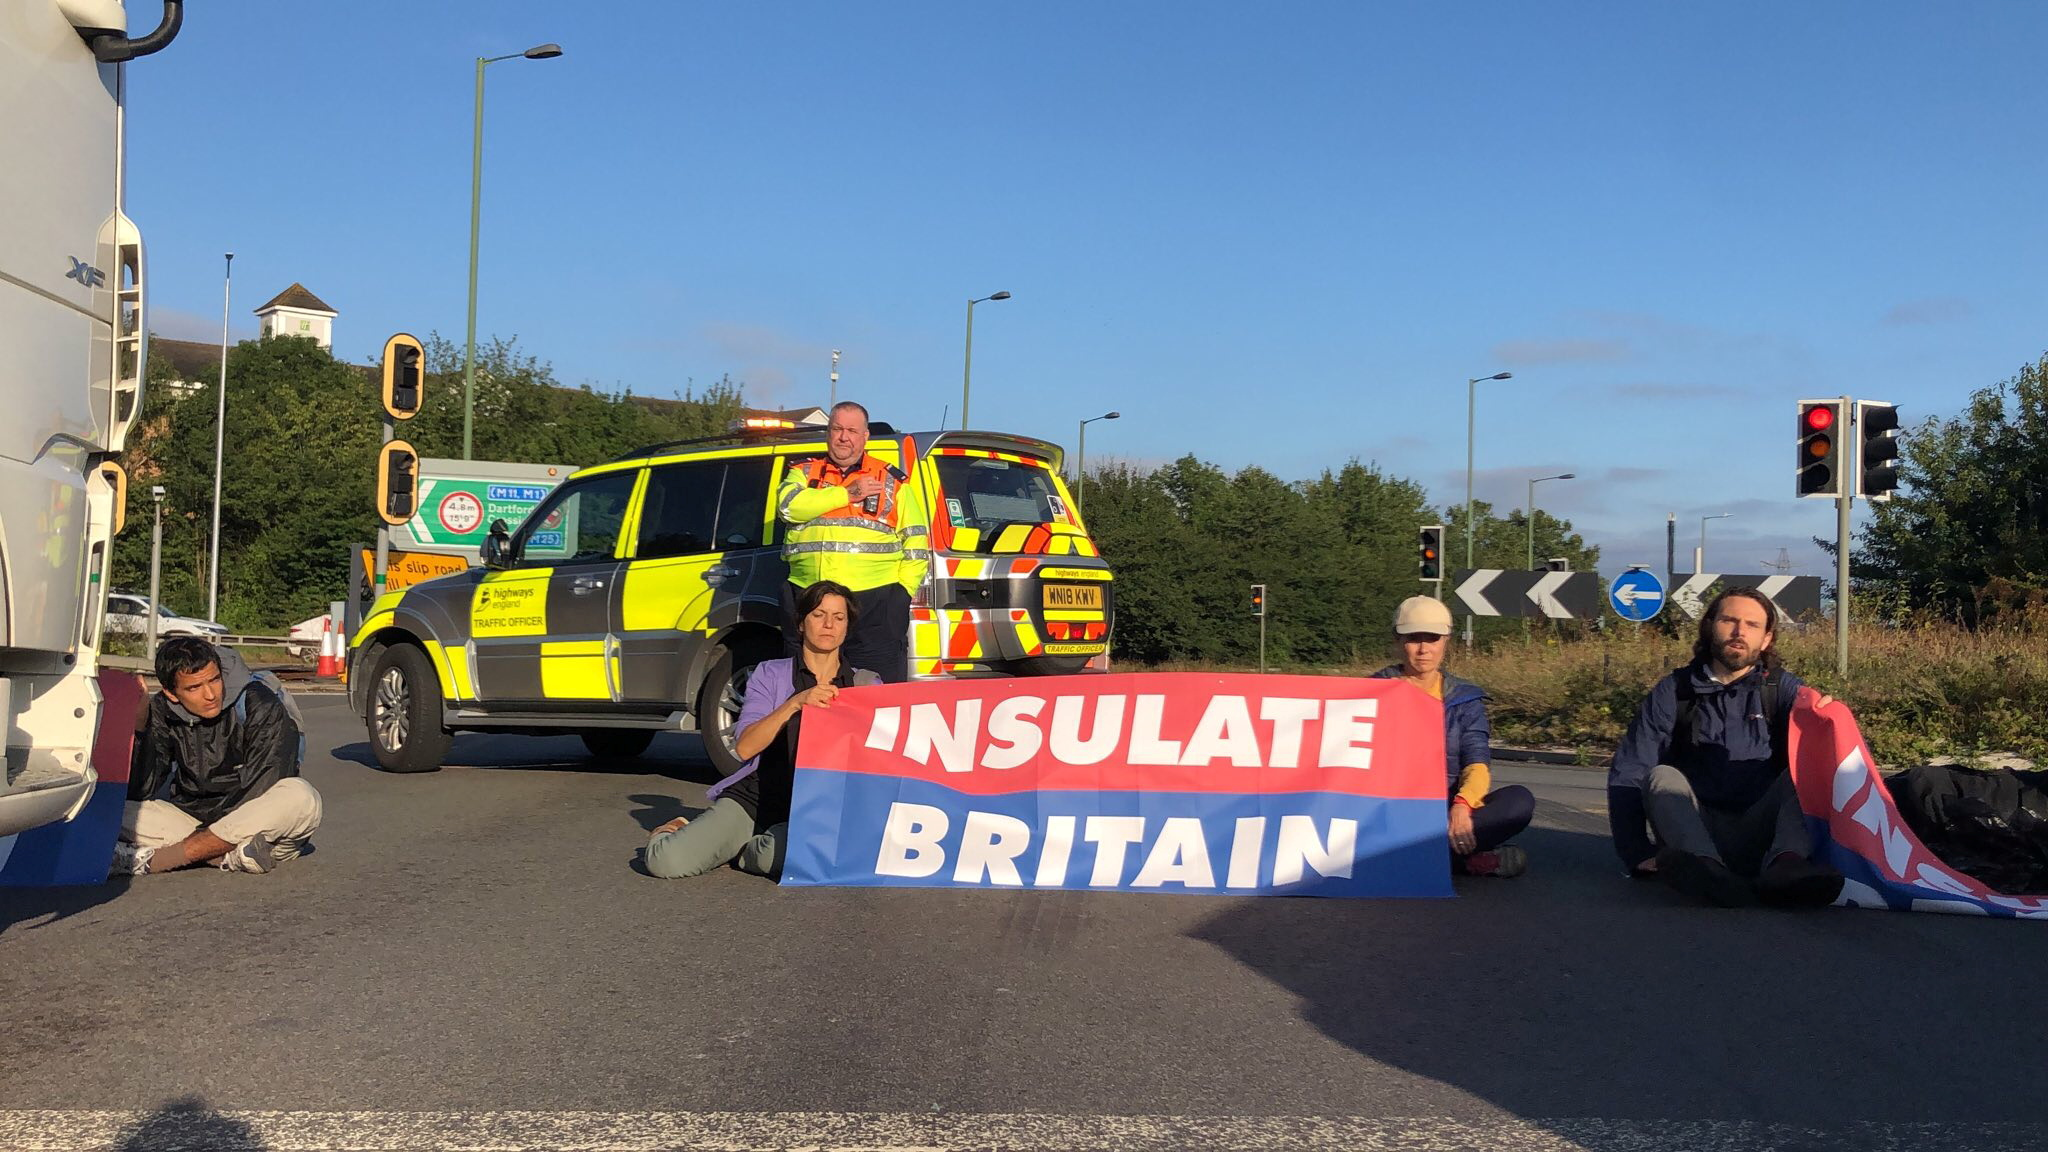 Members of Insulate Britain protest on M25 Motorway, Britain September 15, 2021. Insulate Britain/Handout via REUTERS    THIS IMAGE HAS BEEN SUPPLIED BY A THIRD PARTY. NO RESALES. NO ARCHIVES. MANDATORY CREDIT